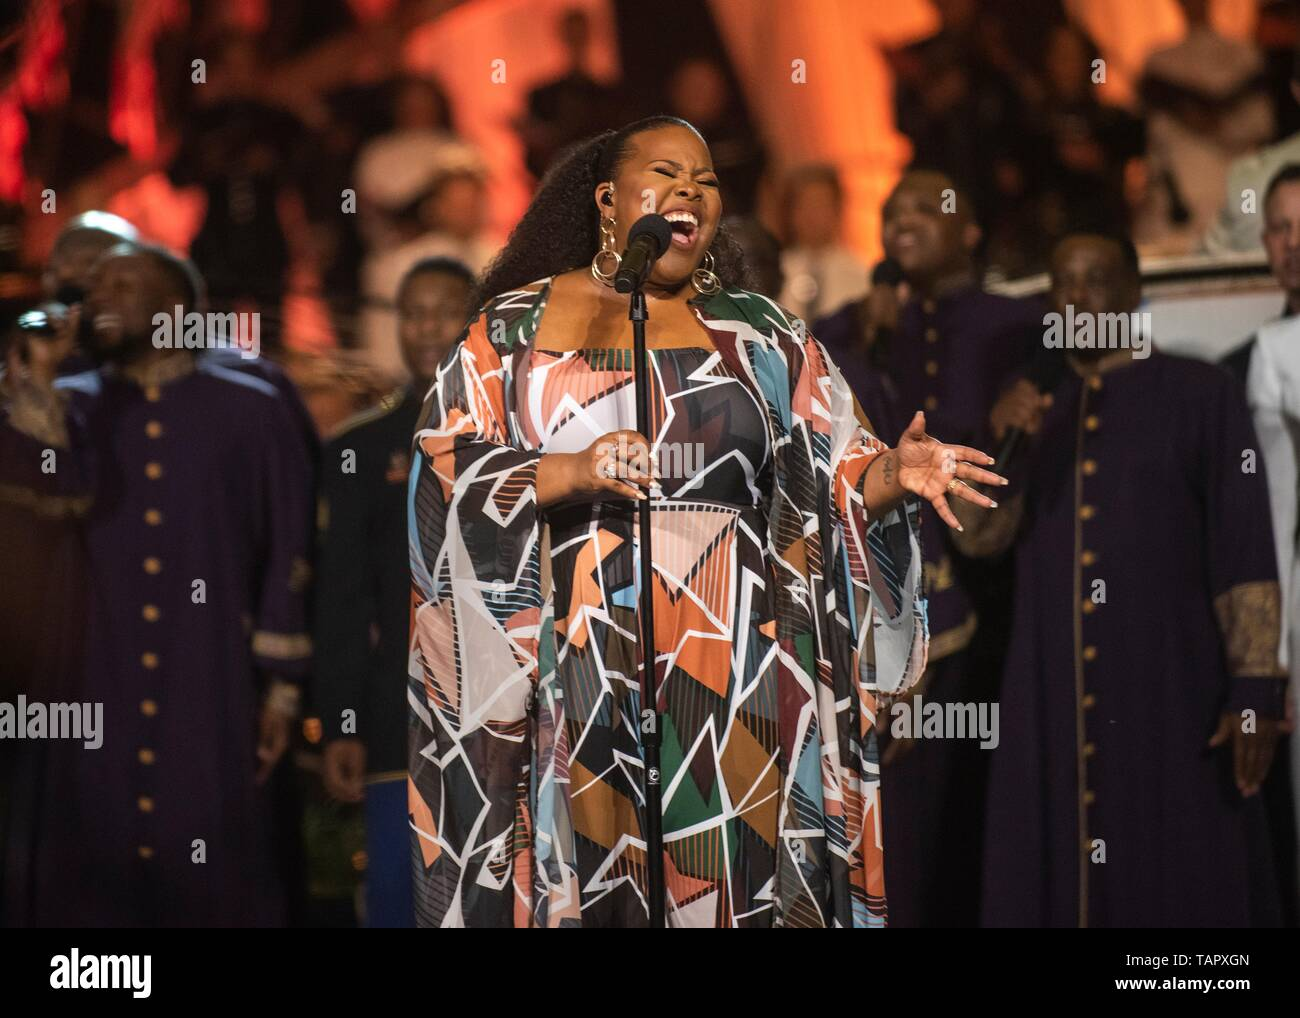 Musician Amber Riley performs on stage during the National Memorial Day Concert on the west lawn of the U.S. Capitol May 26, 2019 in Washington, D.C. The concert is in remembrance of service members that gave their life for the country. - Stock Image